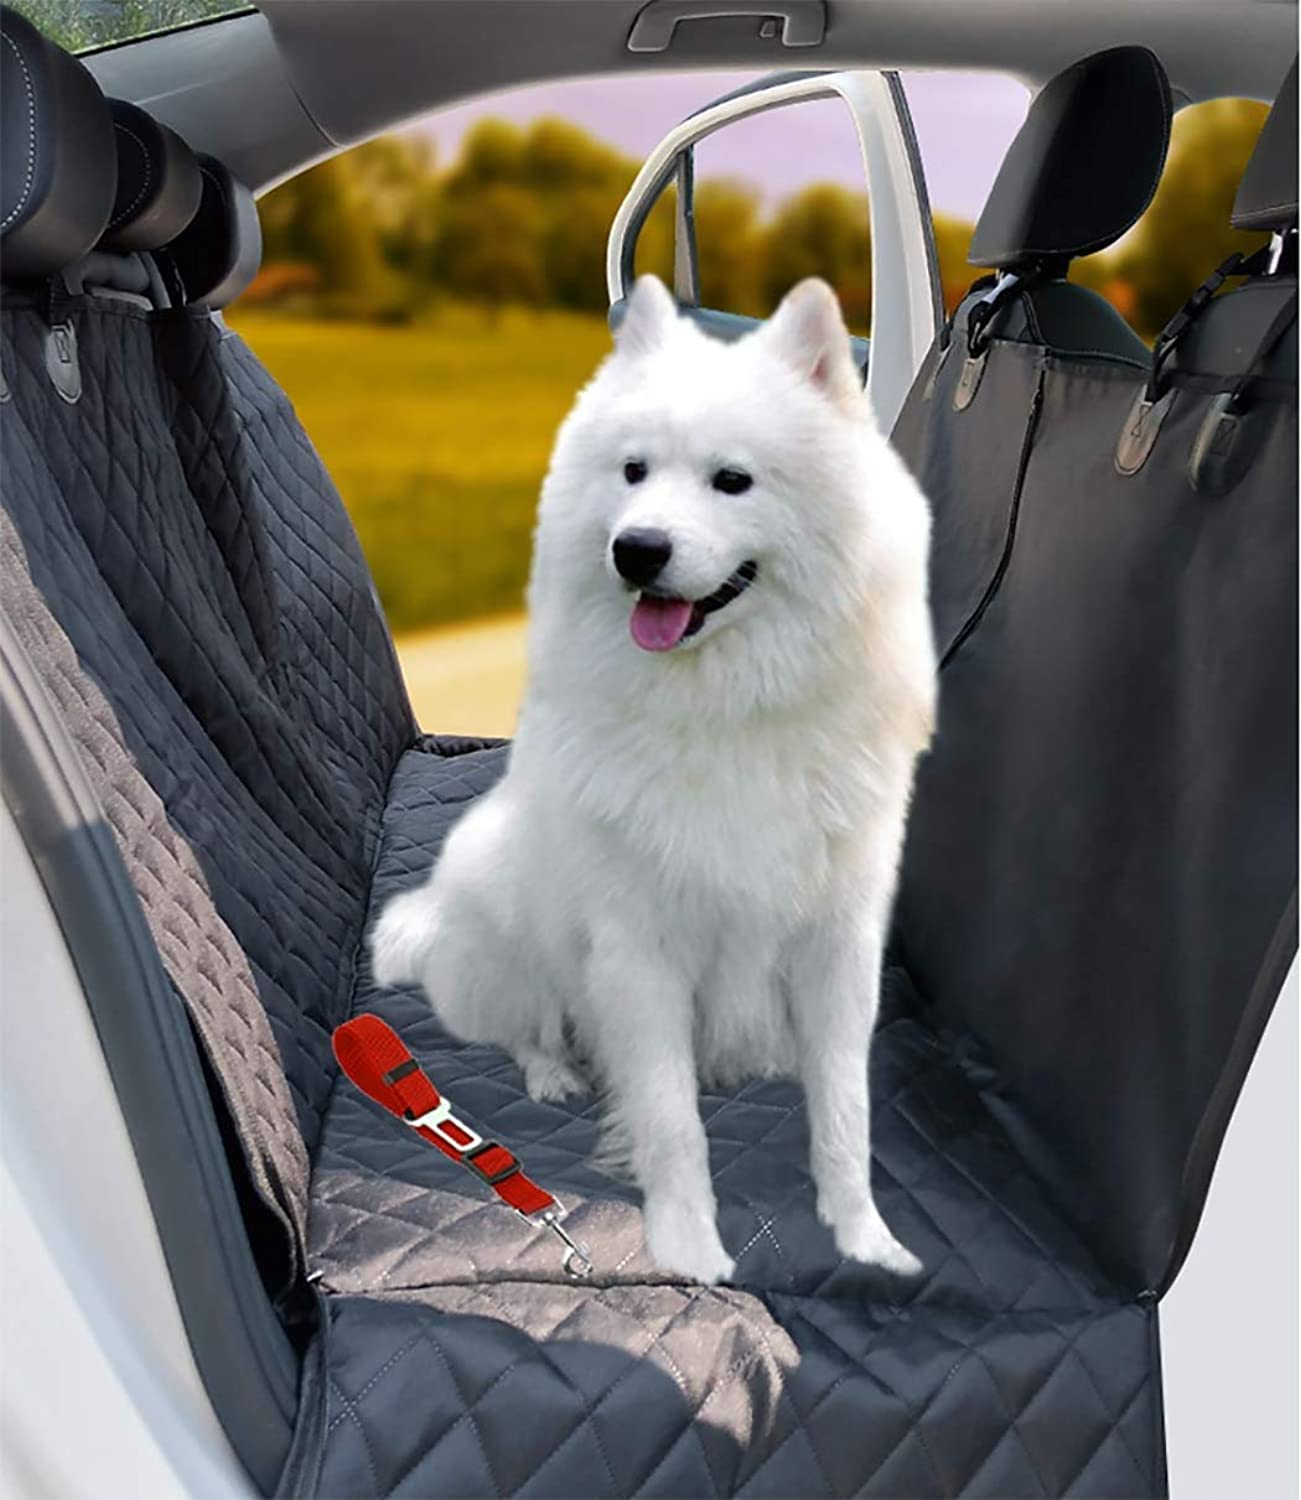 GDZ Dog Car Seat Cover with Visible Window, Car Boot Predector with Side Predection, Waterproof NonSlip Easy to Clean for Car Truck SUV